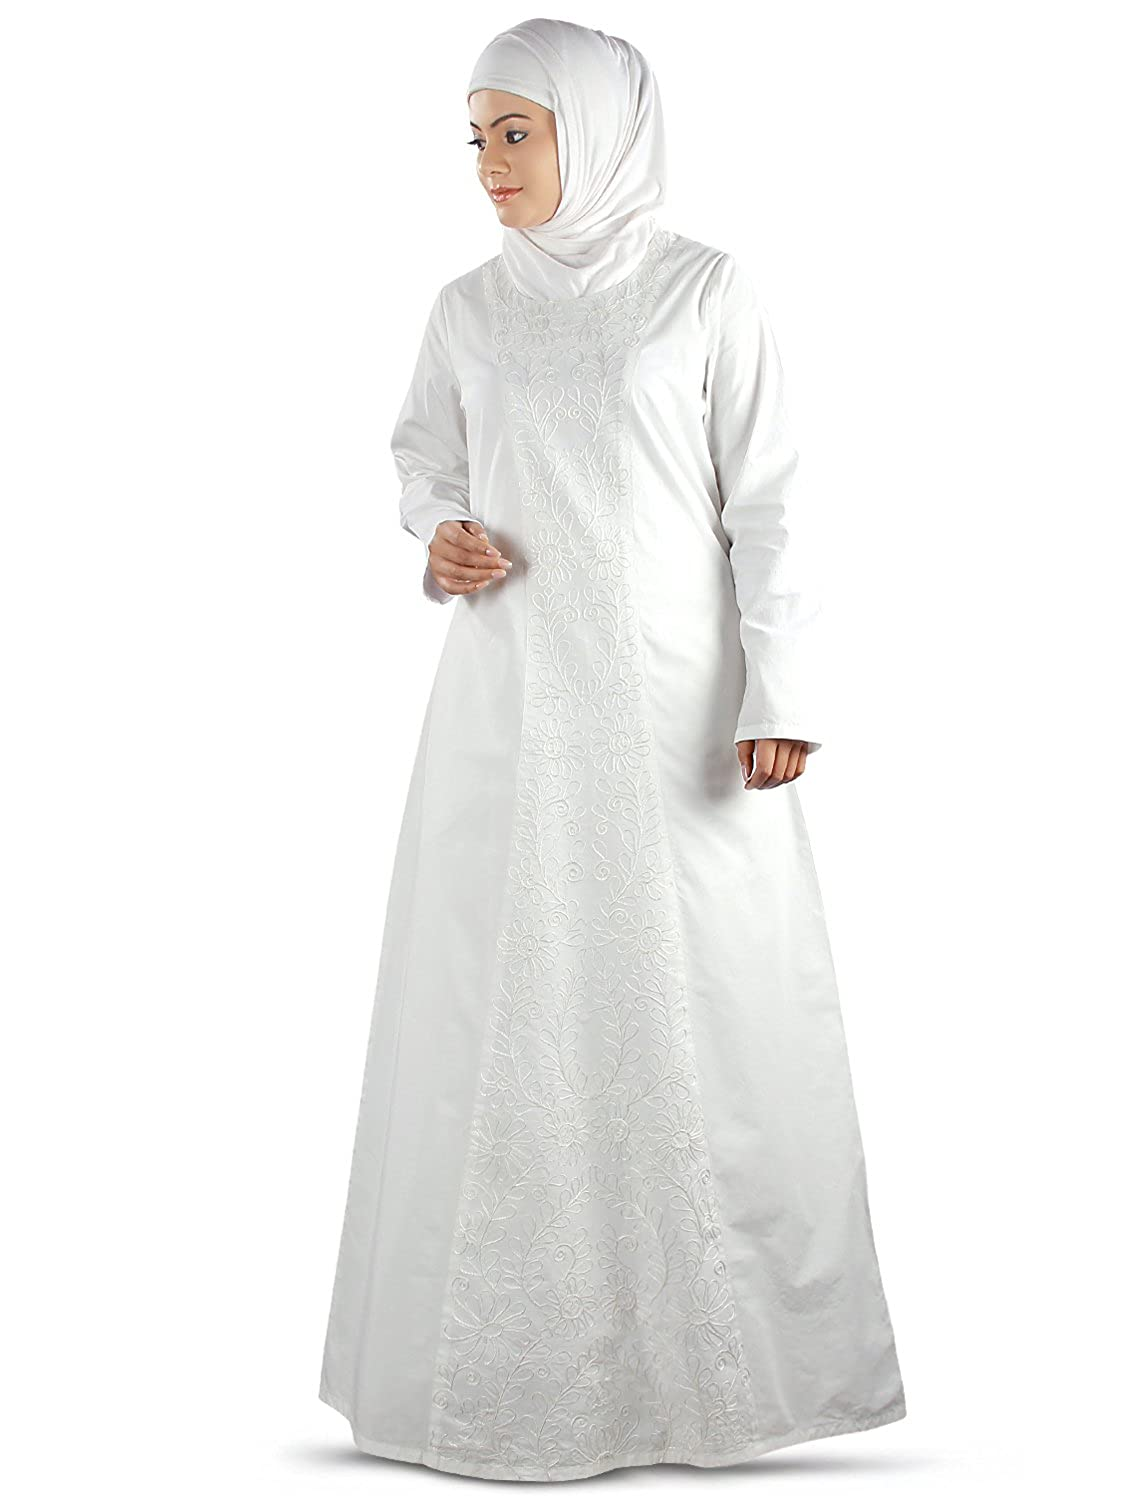 MyBatua Women's Muslim Hajj Clothing, White Cotton Abaya